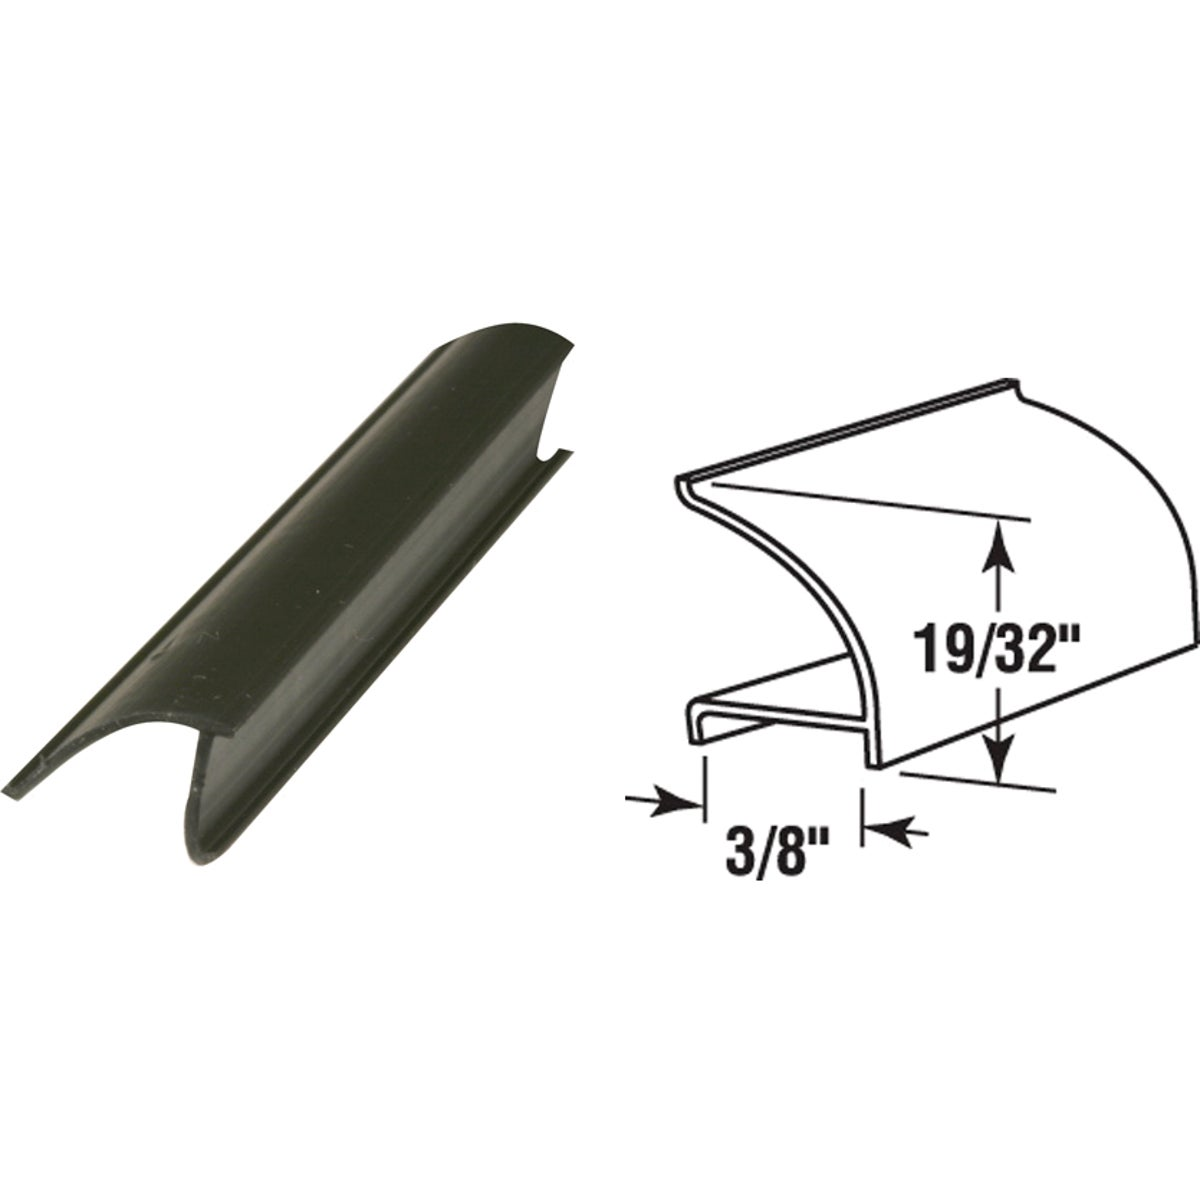 "72"" BLK RIGID SPLINE - P7816 by Prime Line Products"